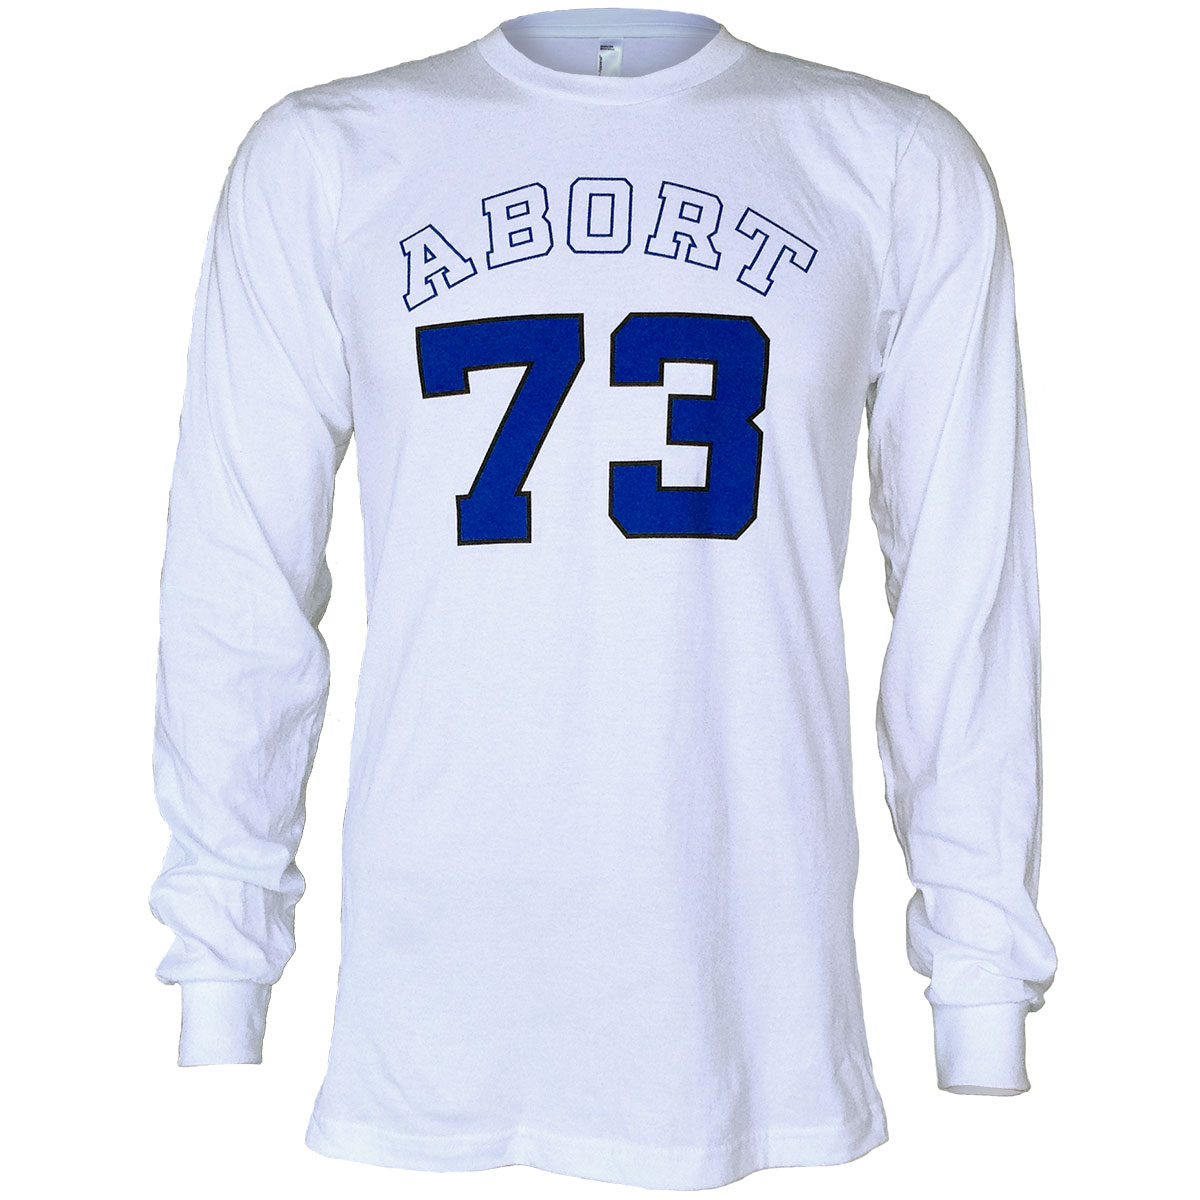 Abort73 (Blue Devils) (Abort73 Unisex Long Sleeve T-shirt)